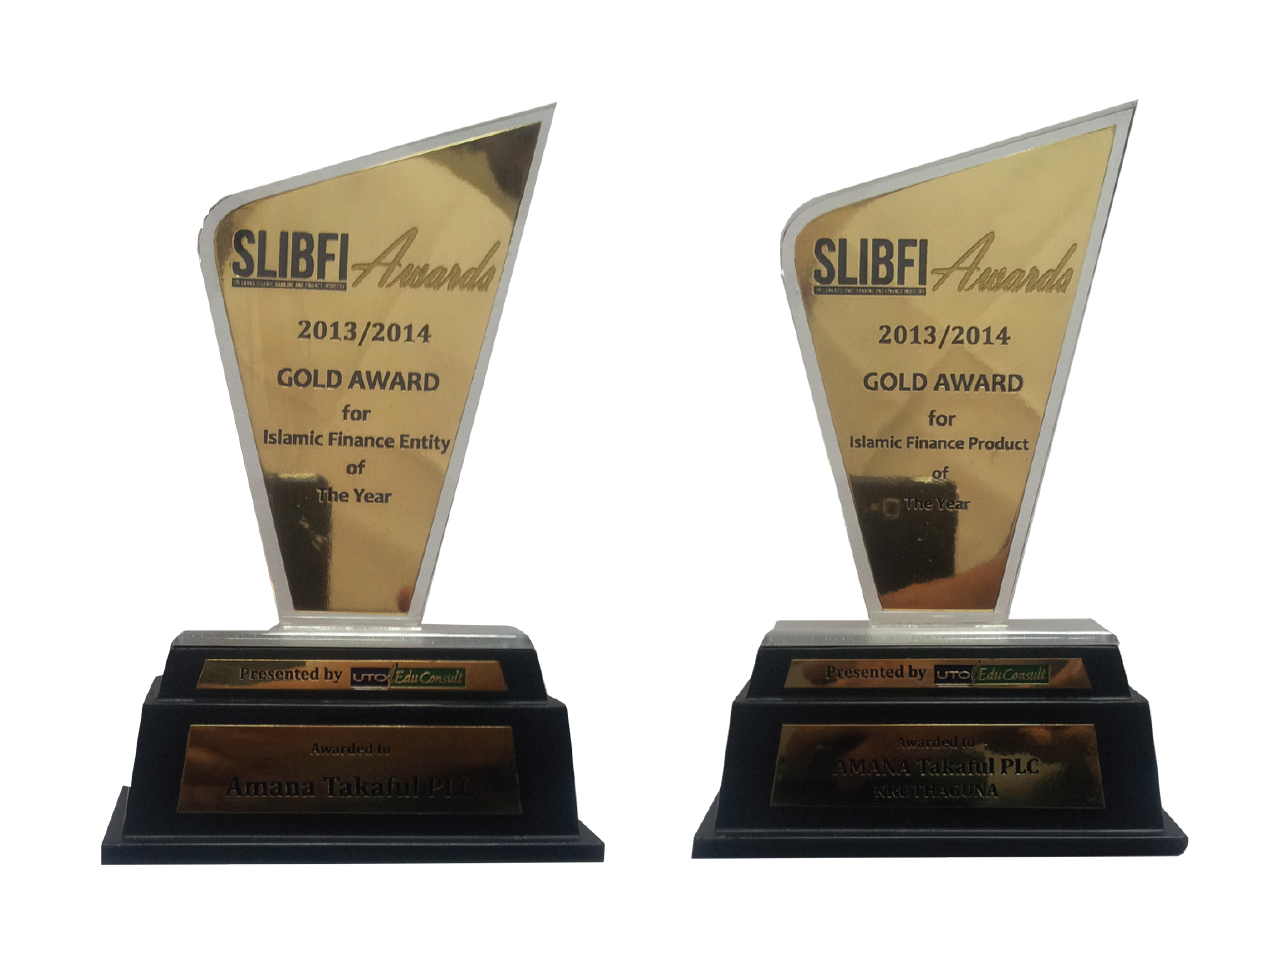 SLIBFI Gold for Islamic Finance Entity of the Year & SLIBFI Gold for Isl....